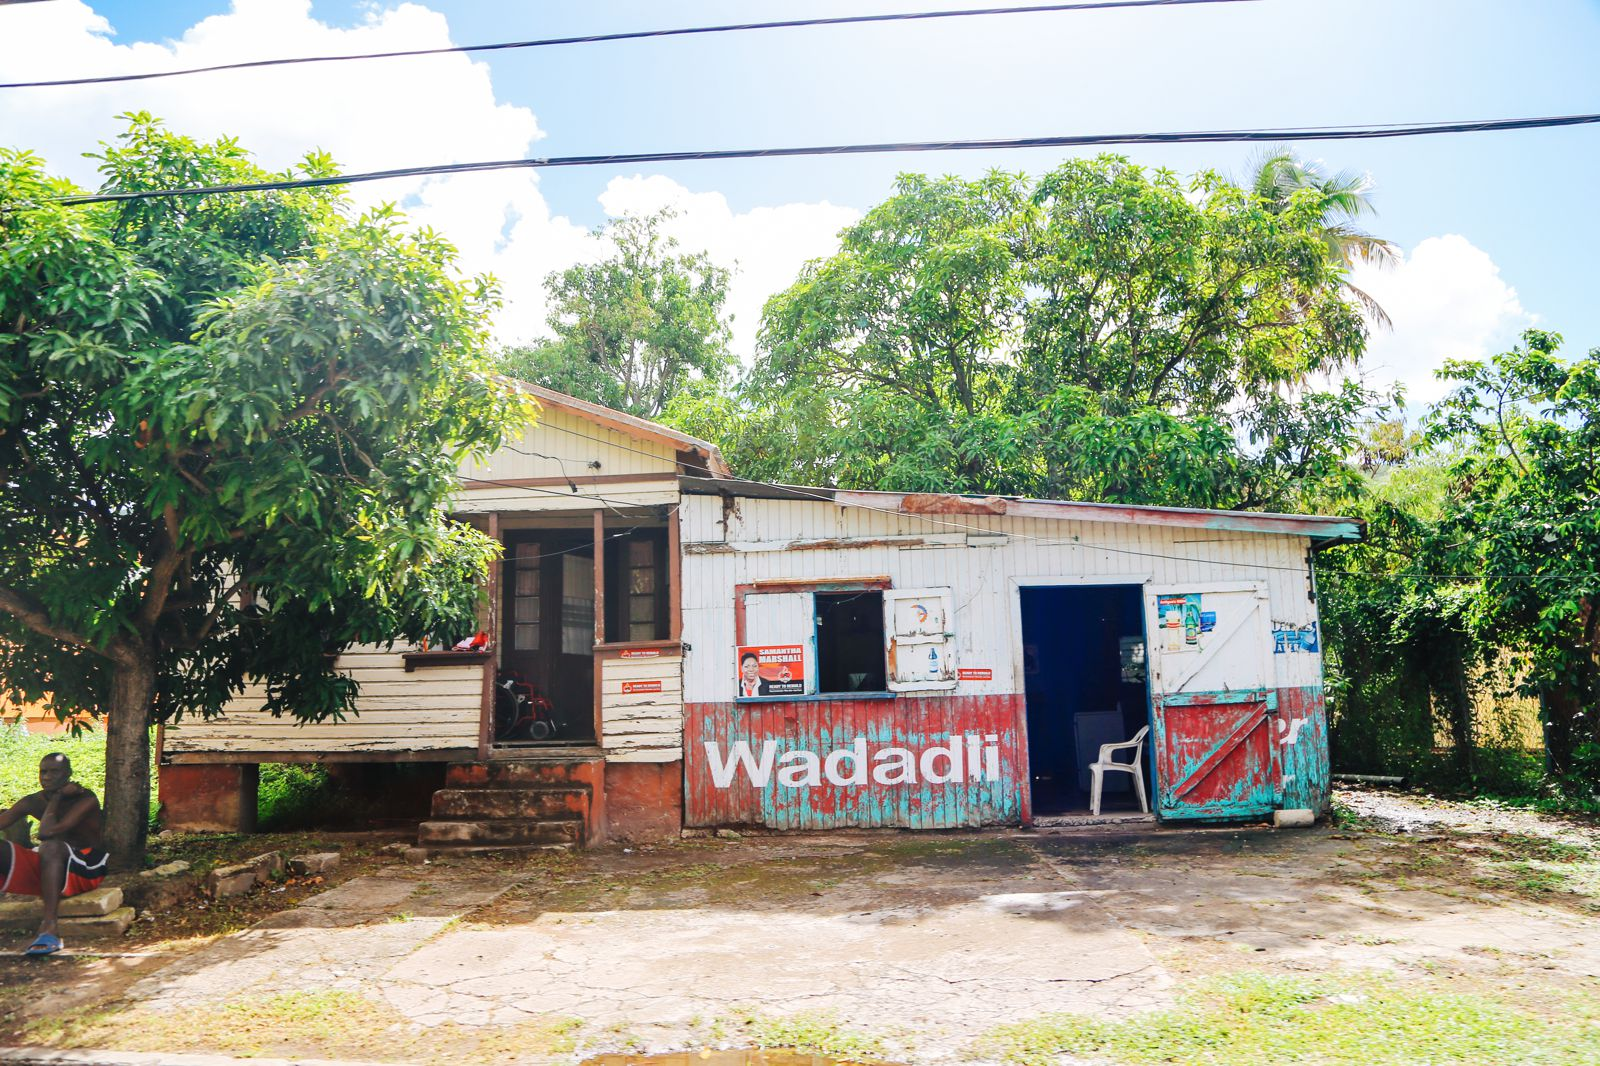 Exploring The Caribbean Island Of Antigua By Land - Part 2 (49)